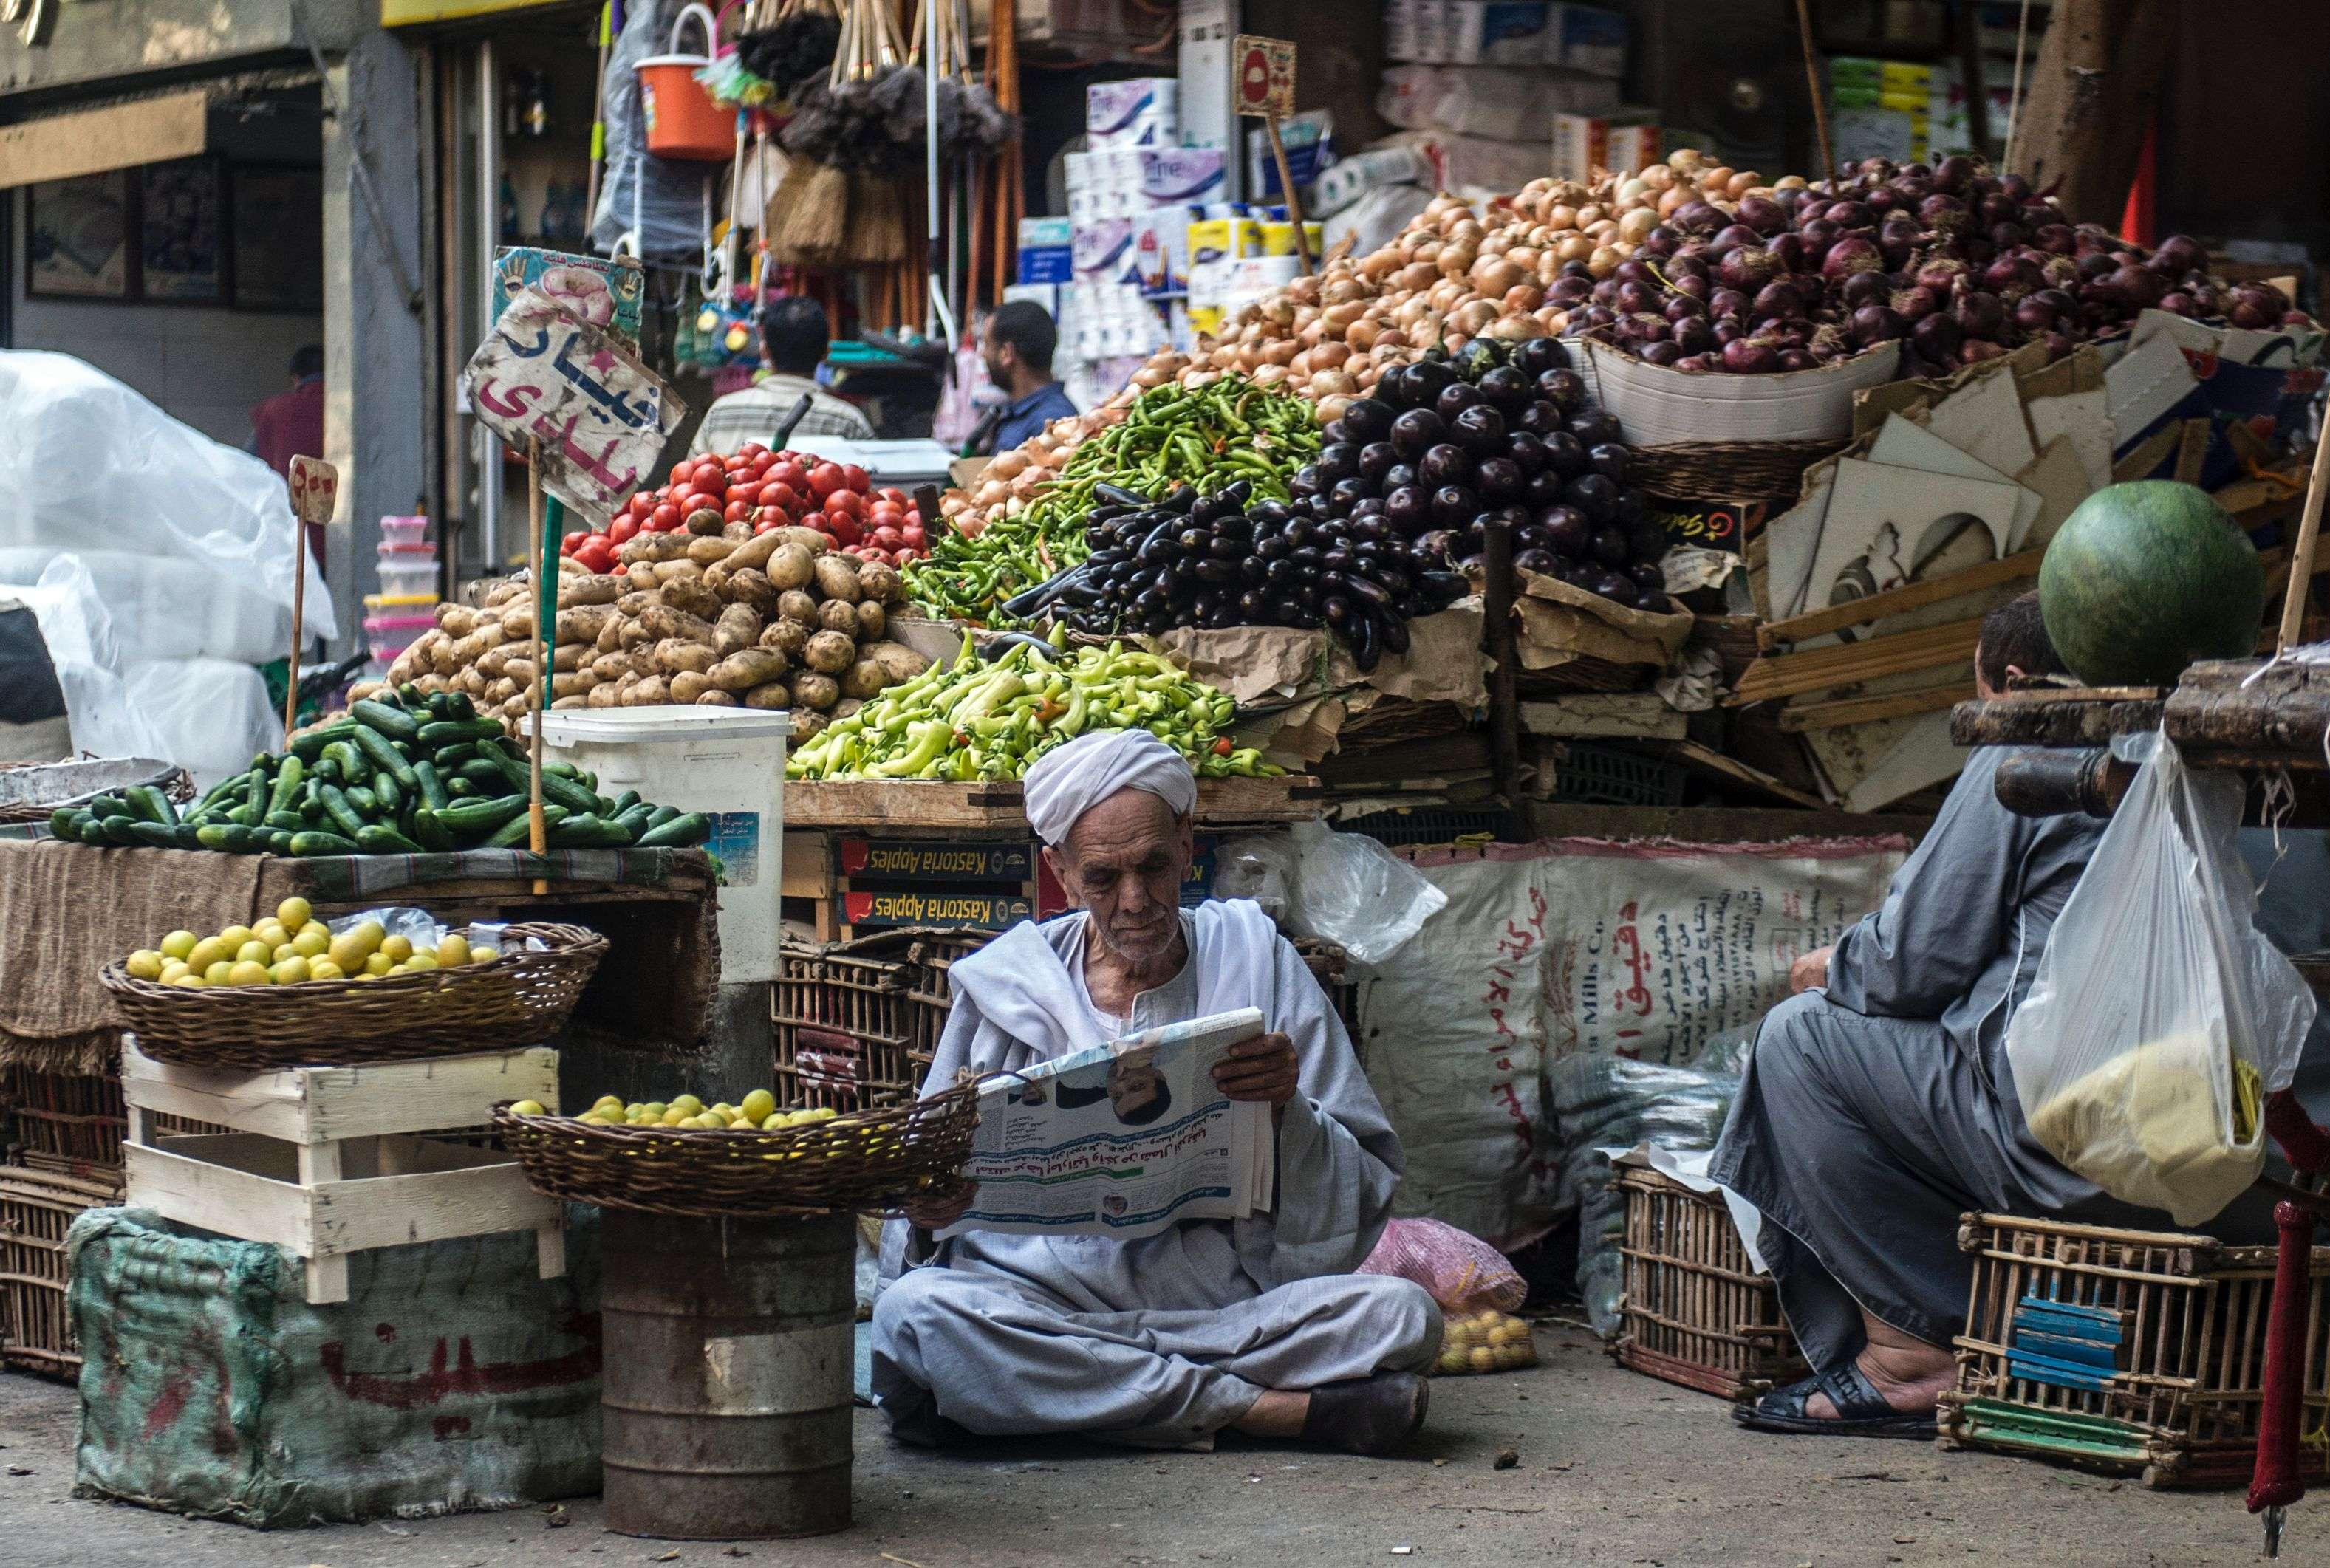 An Egyptian vendor reads the newspaper outside his fruit and vegetable stand in Cairo. (AFP)